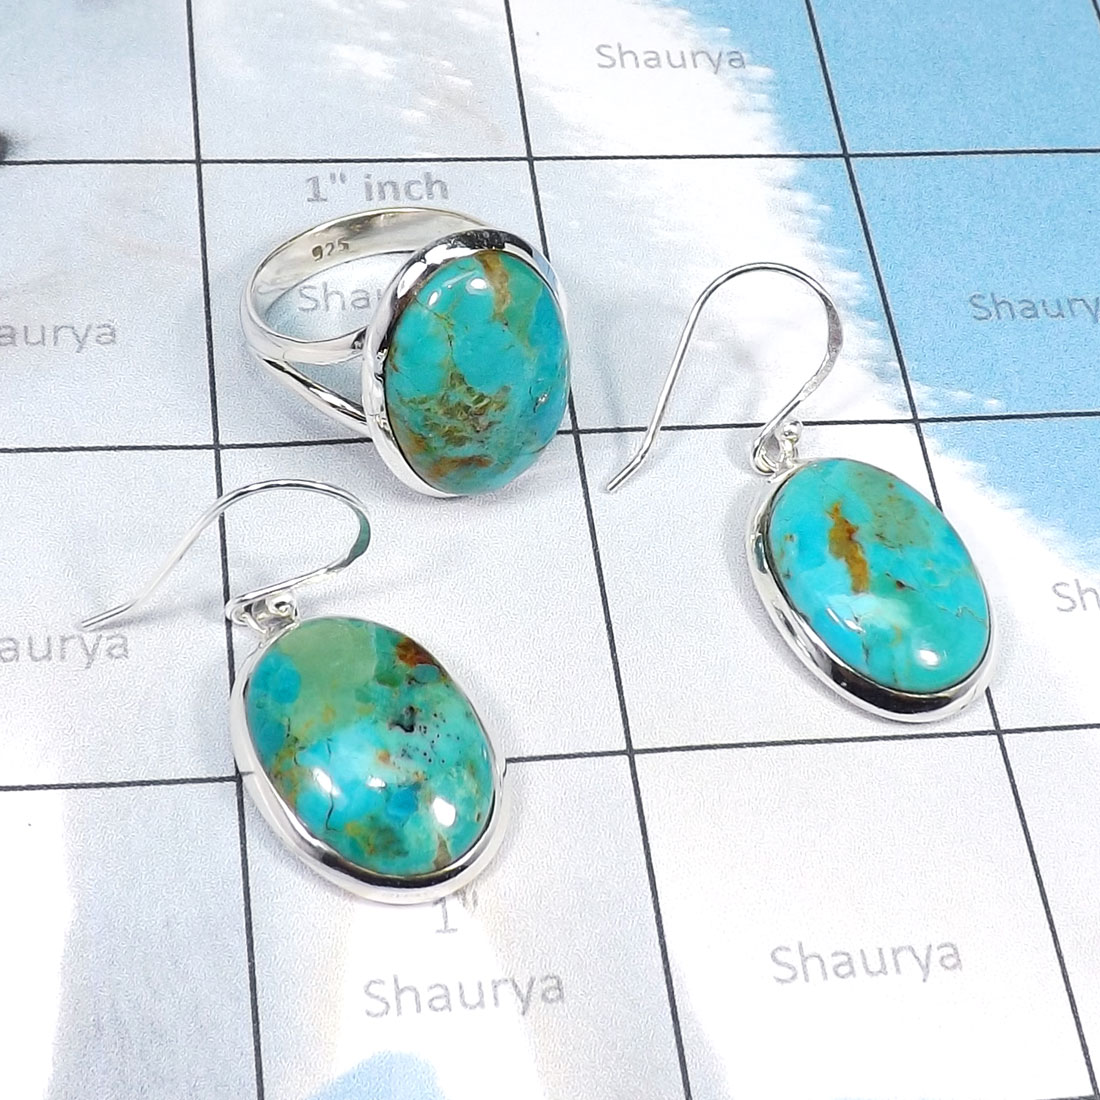 2Pcs Blue Turquoise A - CBS976-Beautiful Ring Earring Wholesale 2Pcs Set of Multi Cab Ge